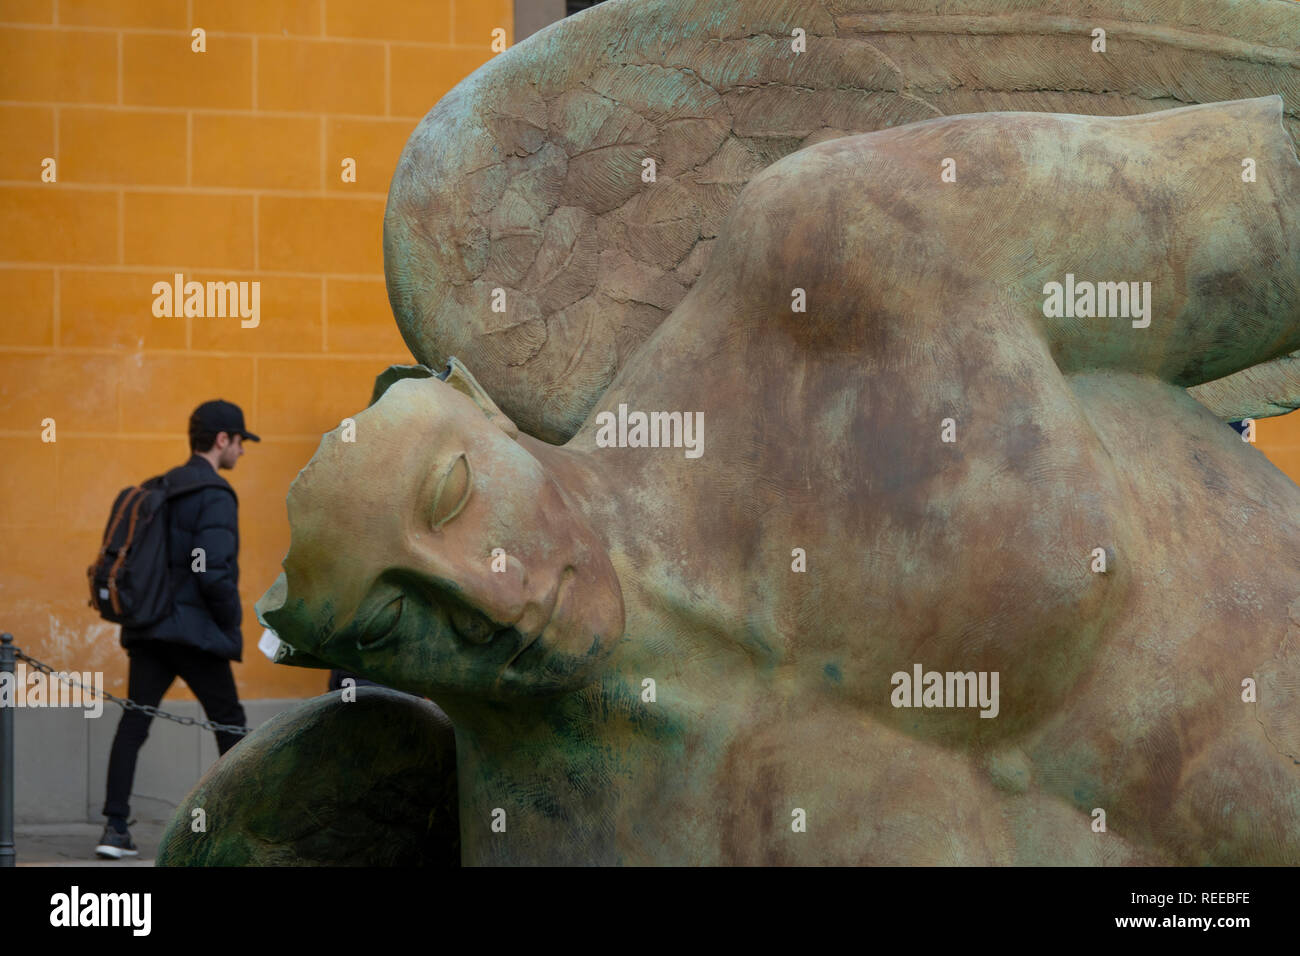 italy-tuscany-pisa-sculpture-fallen-angel-by-angelo-caduto-near-the-leaning-tower-REEBFE.jpg